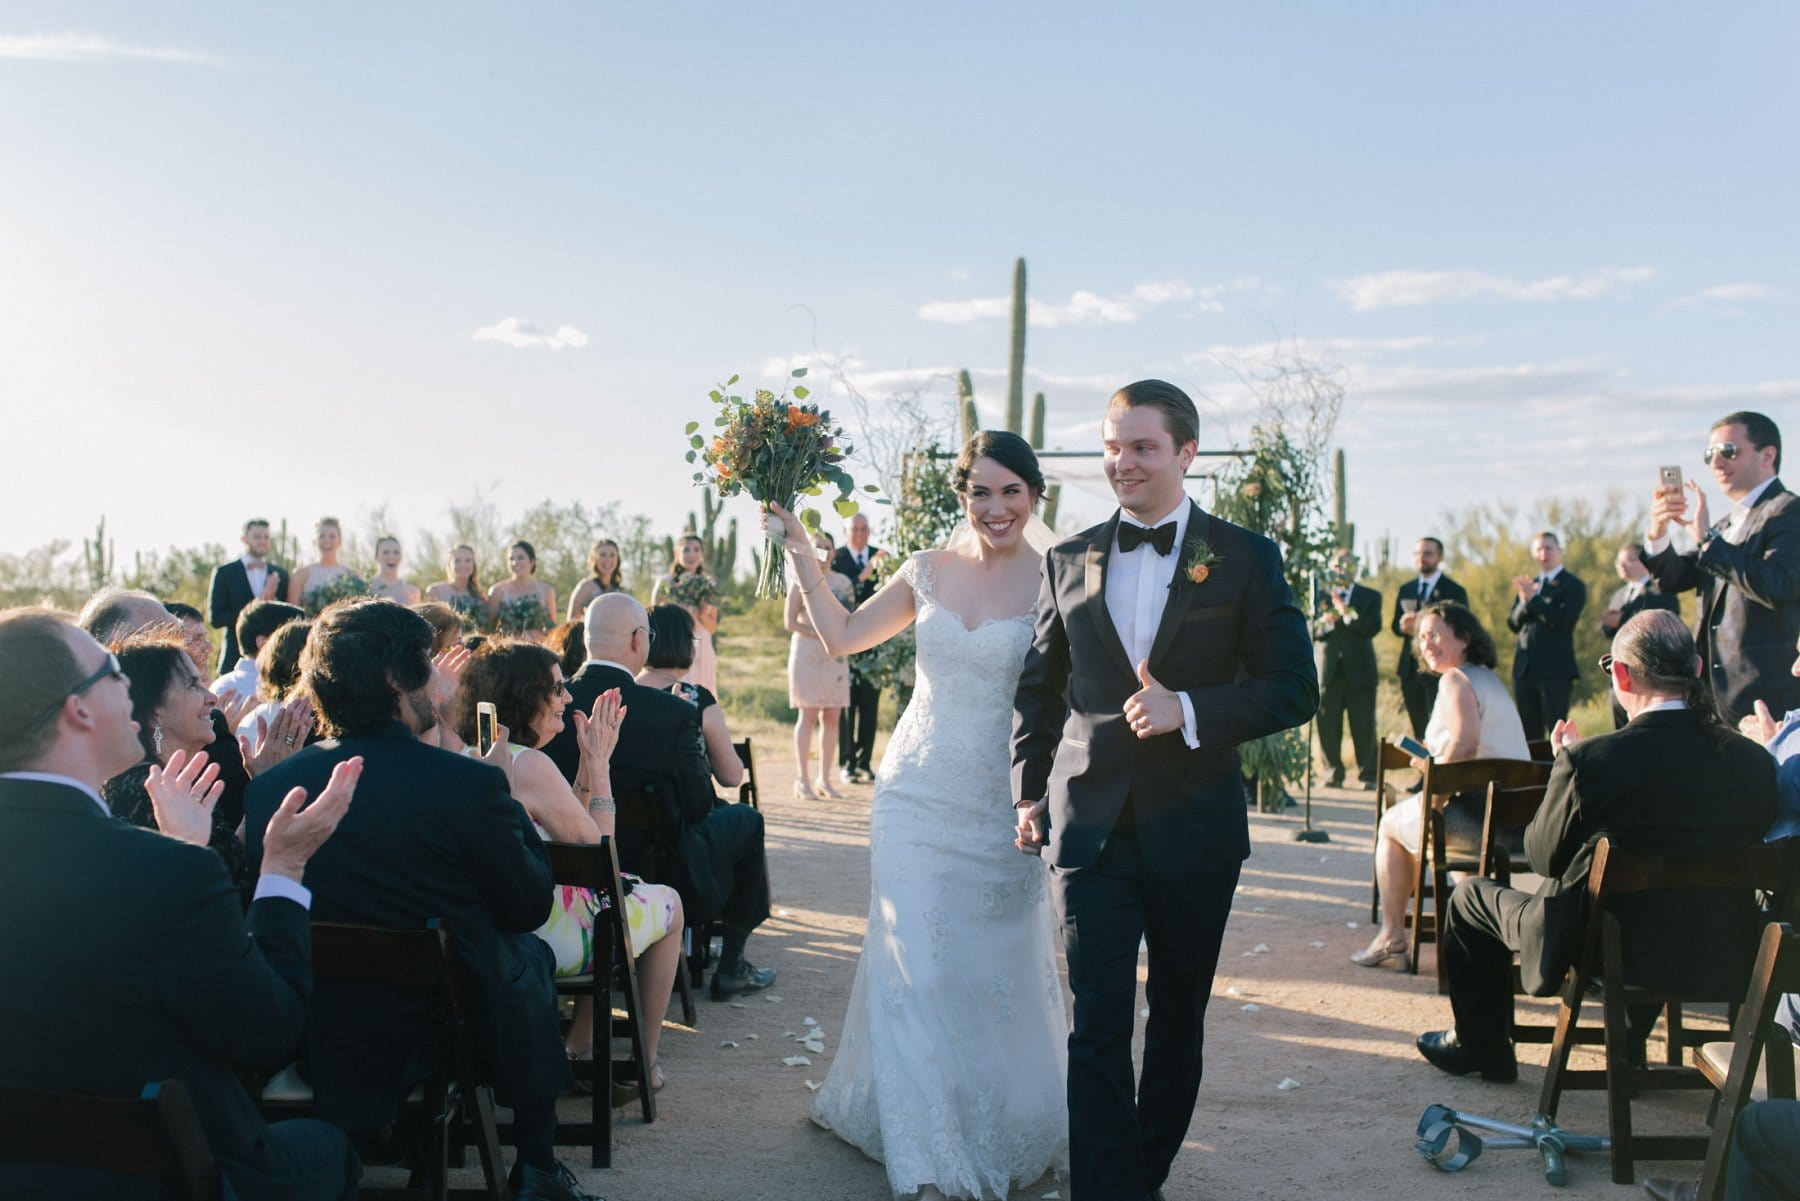 Desert Foothills wedding ceremony bride and groom happy about getting married